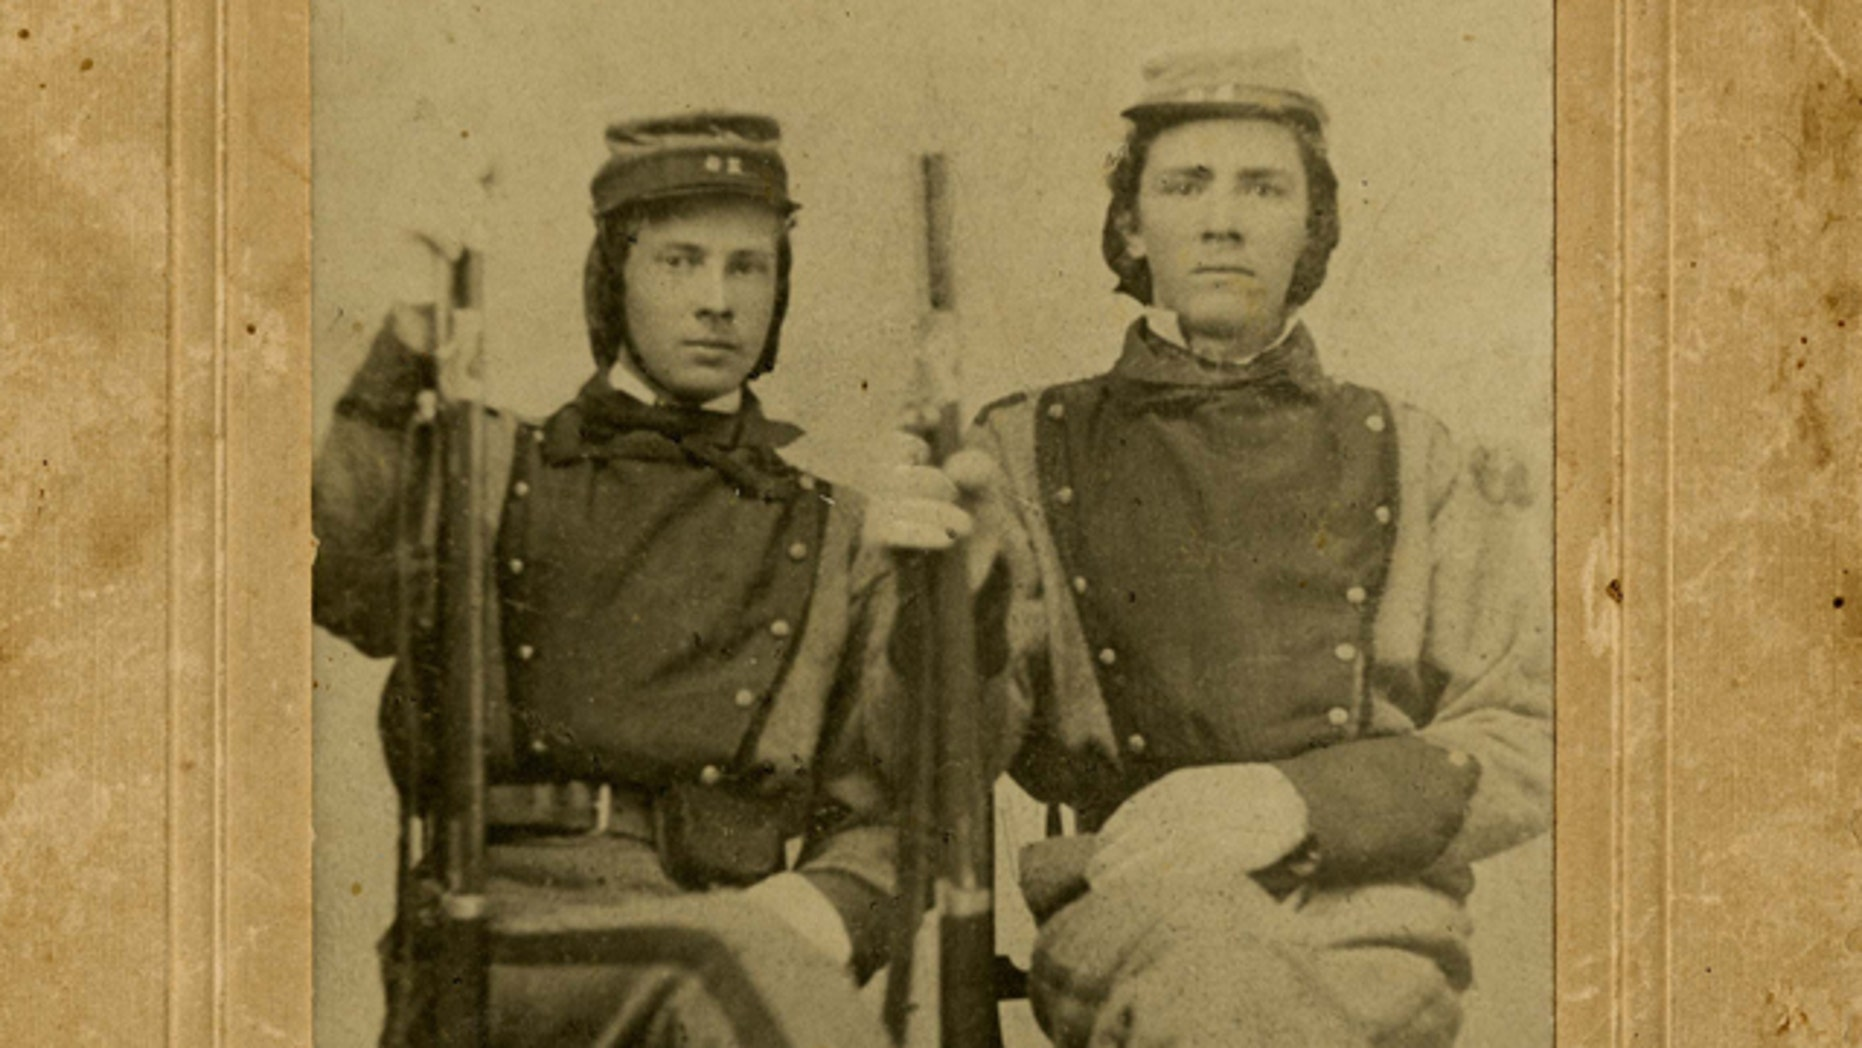 This photograph provided by the Library of Virginia William Henry Taylor, left, and Stephen Stewart, members of the 11th Virginia Infantry.